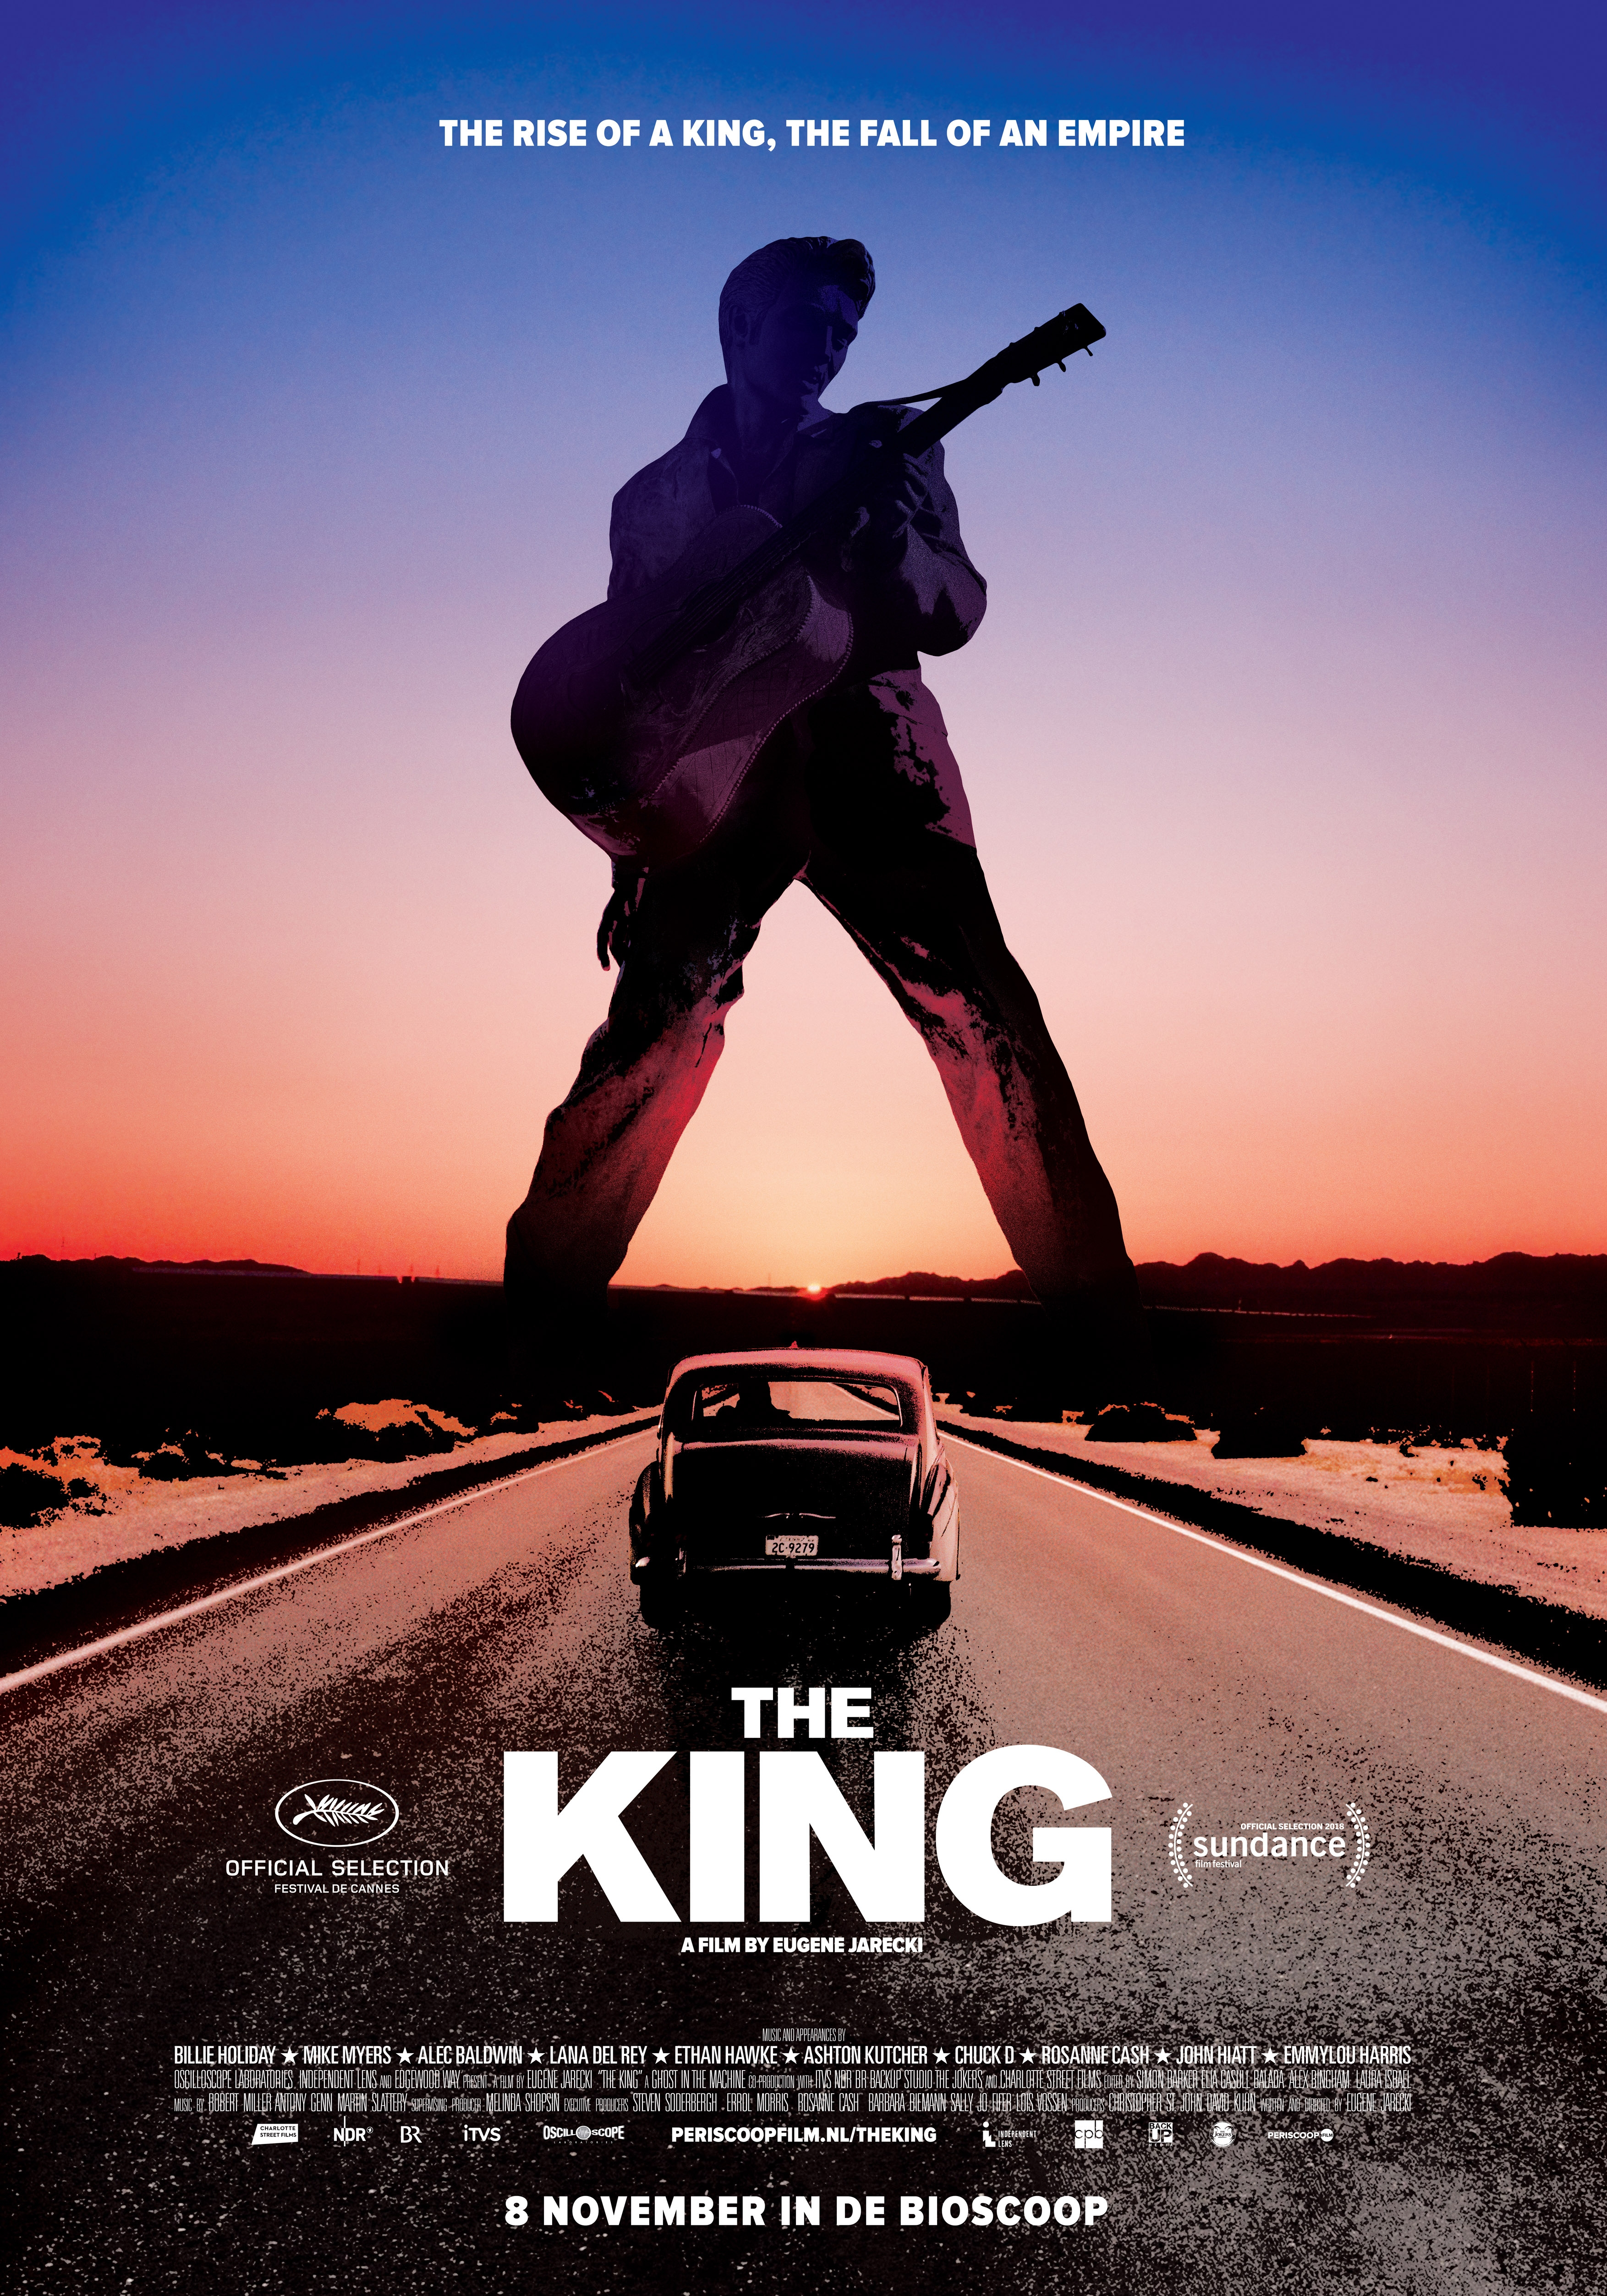 The King poster, © 2017 Periscoop